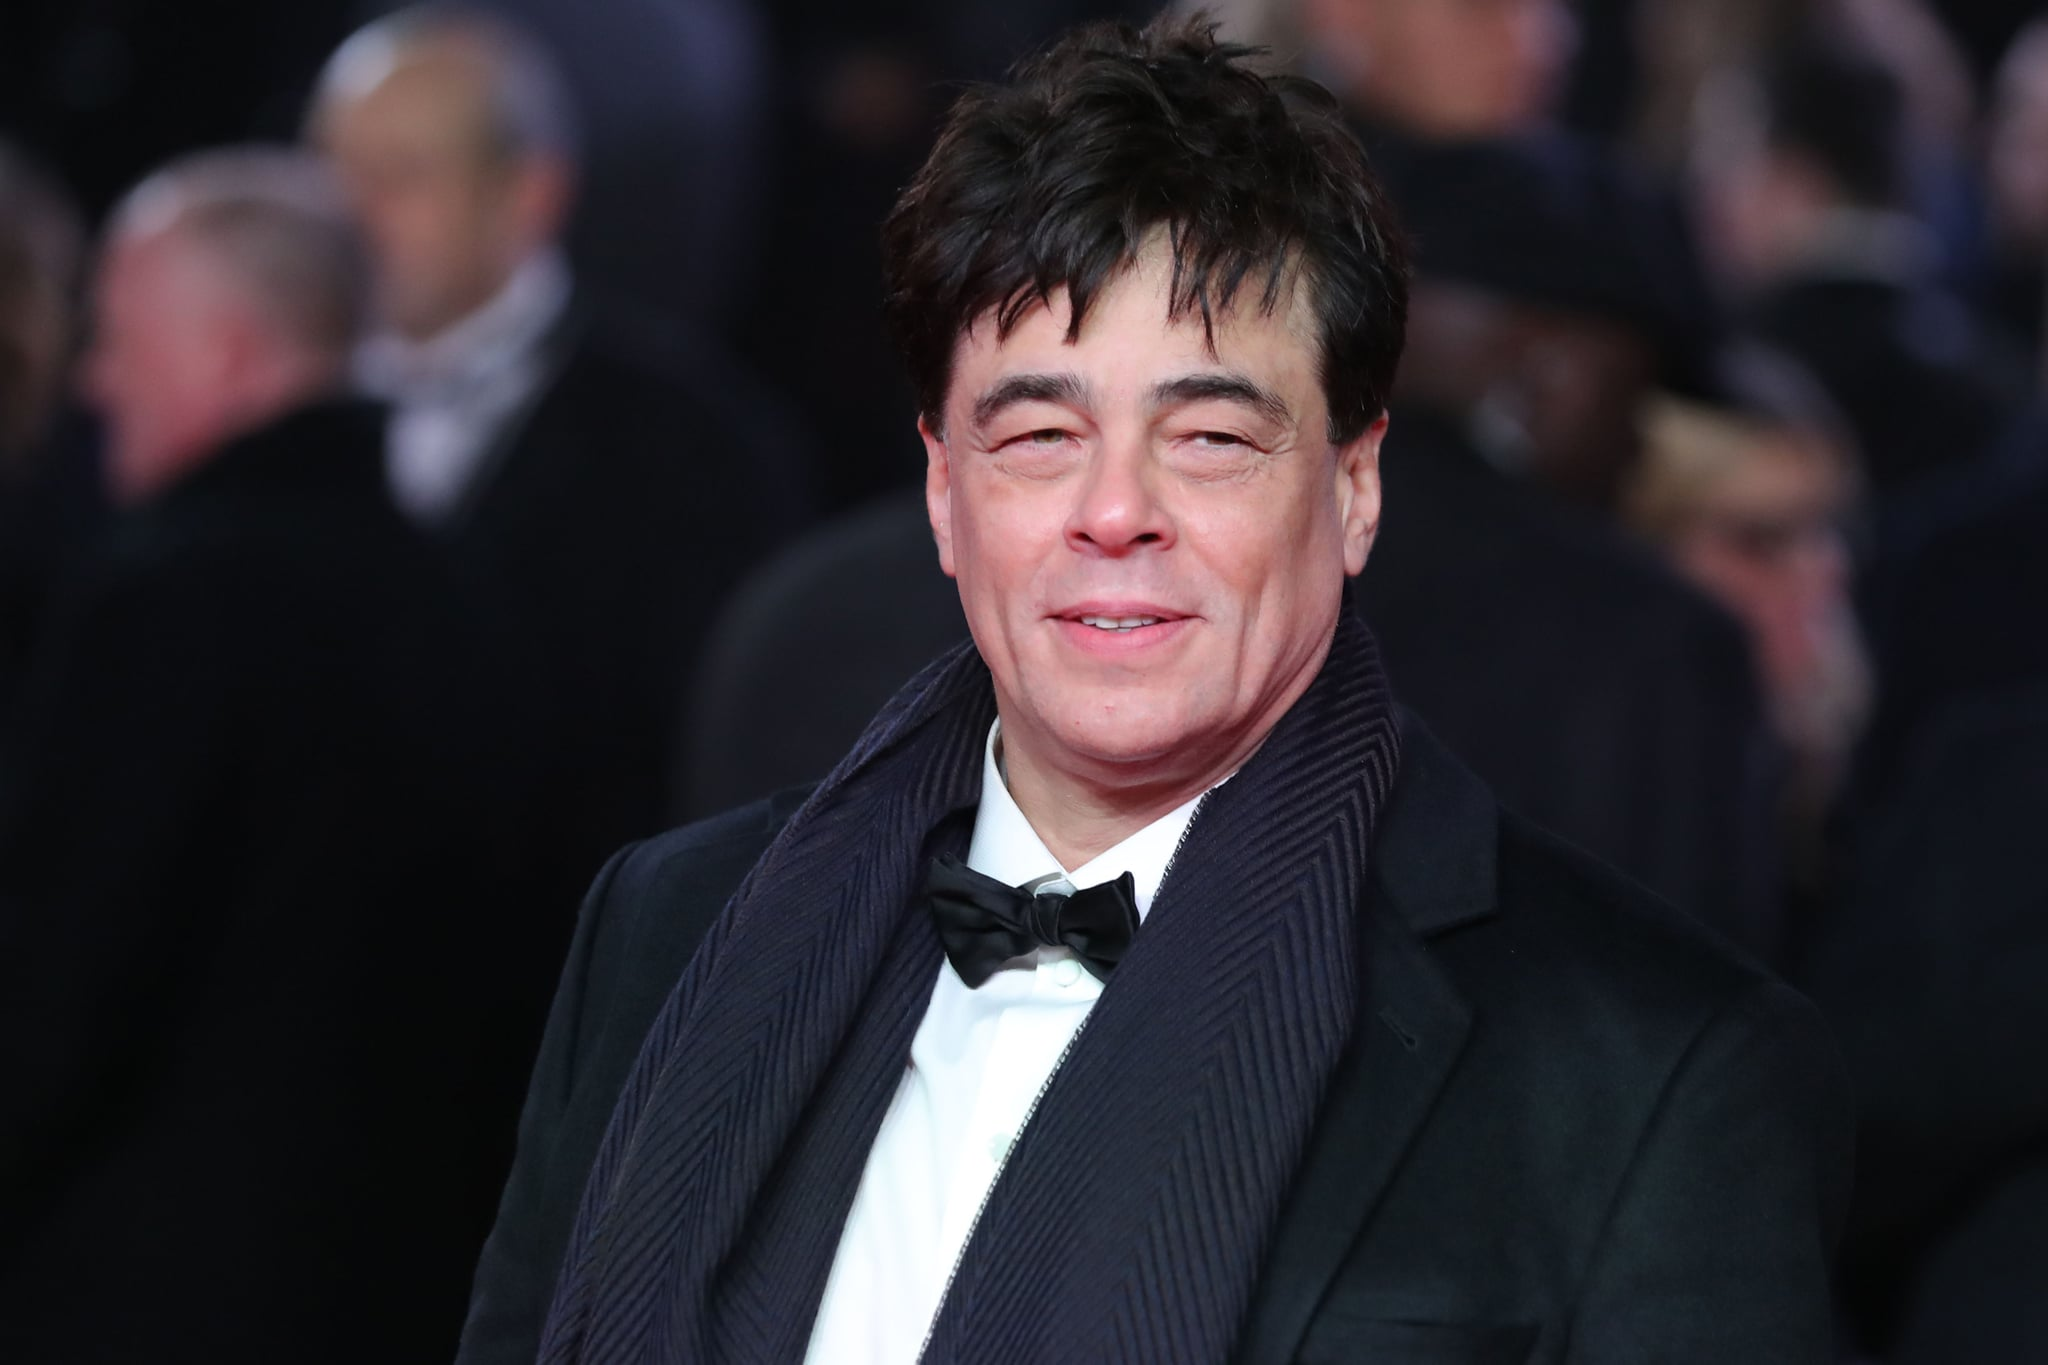 Puerto Rico actor Benicio del Toro poses on the red carpet for the European Premiere of Star Wars: The Last Jedi at the Royal Albert Hall in London on December 12, 2017. / AFP PHOTO / Daniel LEAL-OLIVAS        (Photo credit should read DANIEL LEAL-OLIVAS/AFP/Getty Images)